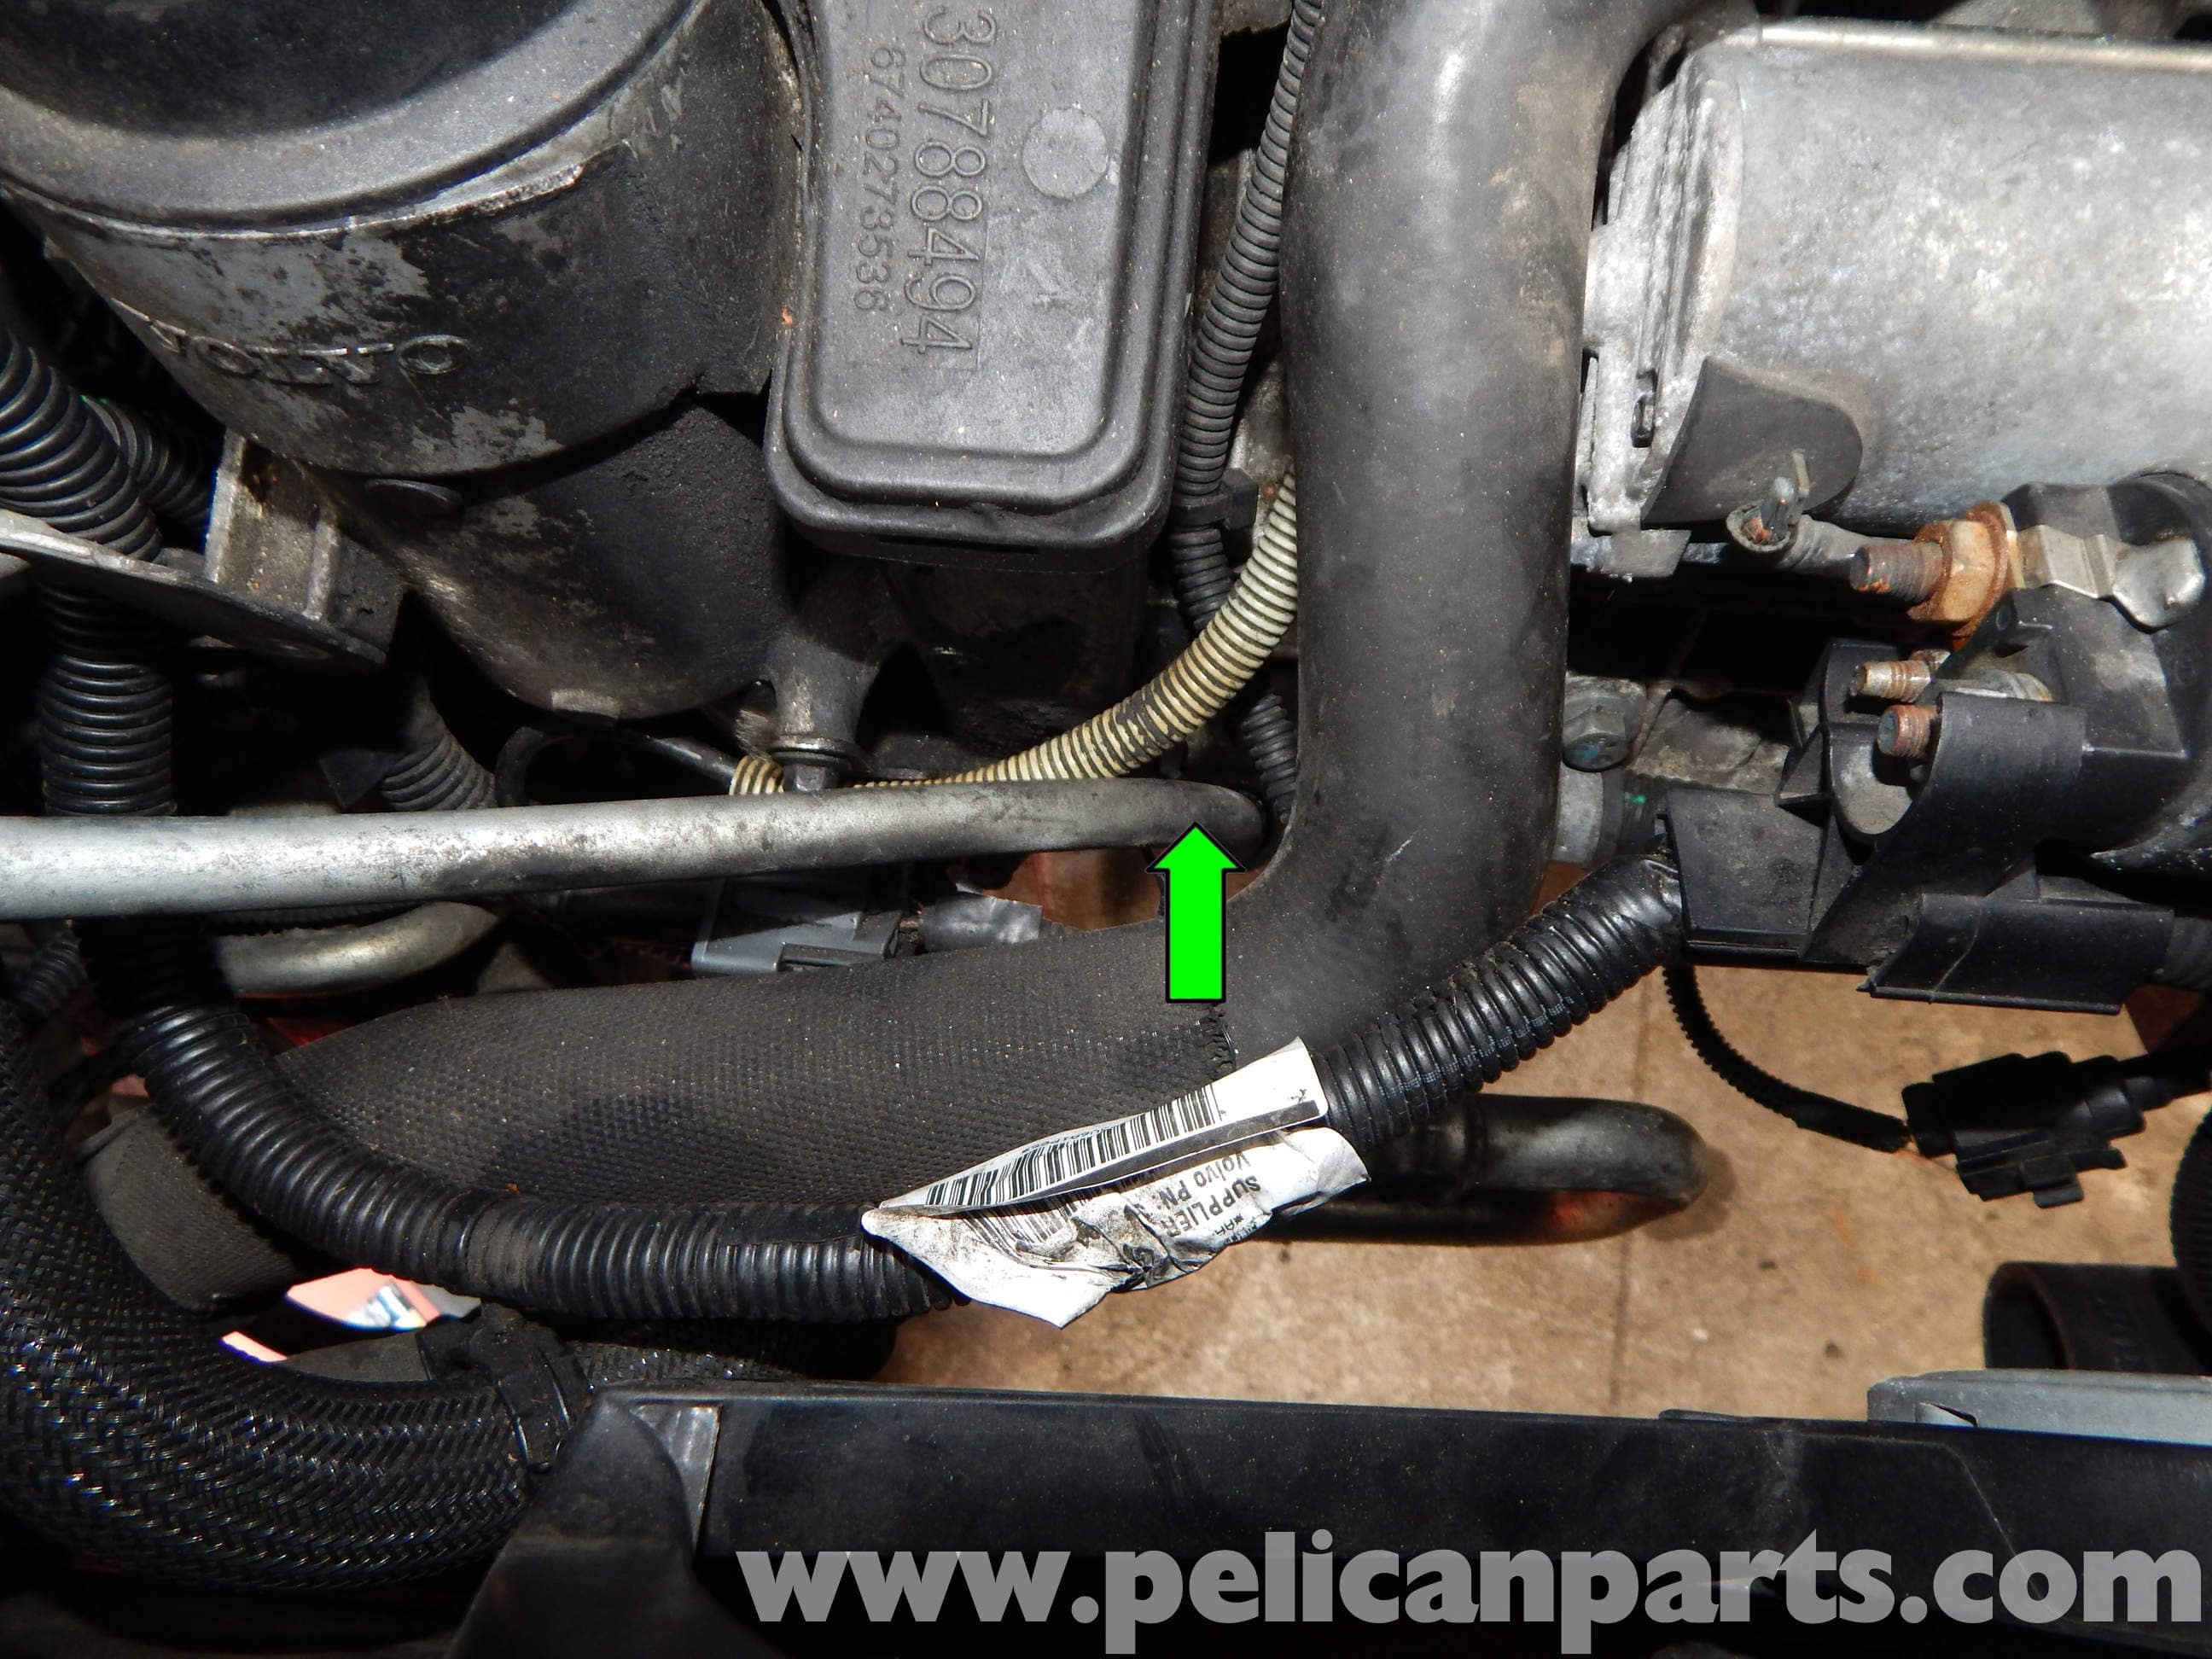 Volvo C30 Oil Pressure Sender Replacement | C30 T5 (2008-2013), C30 ...